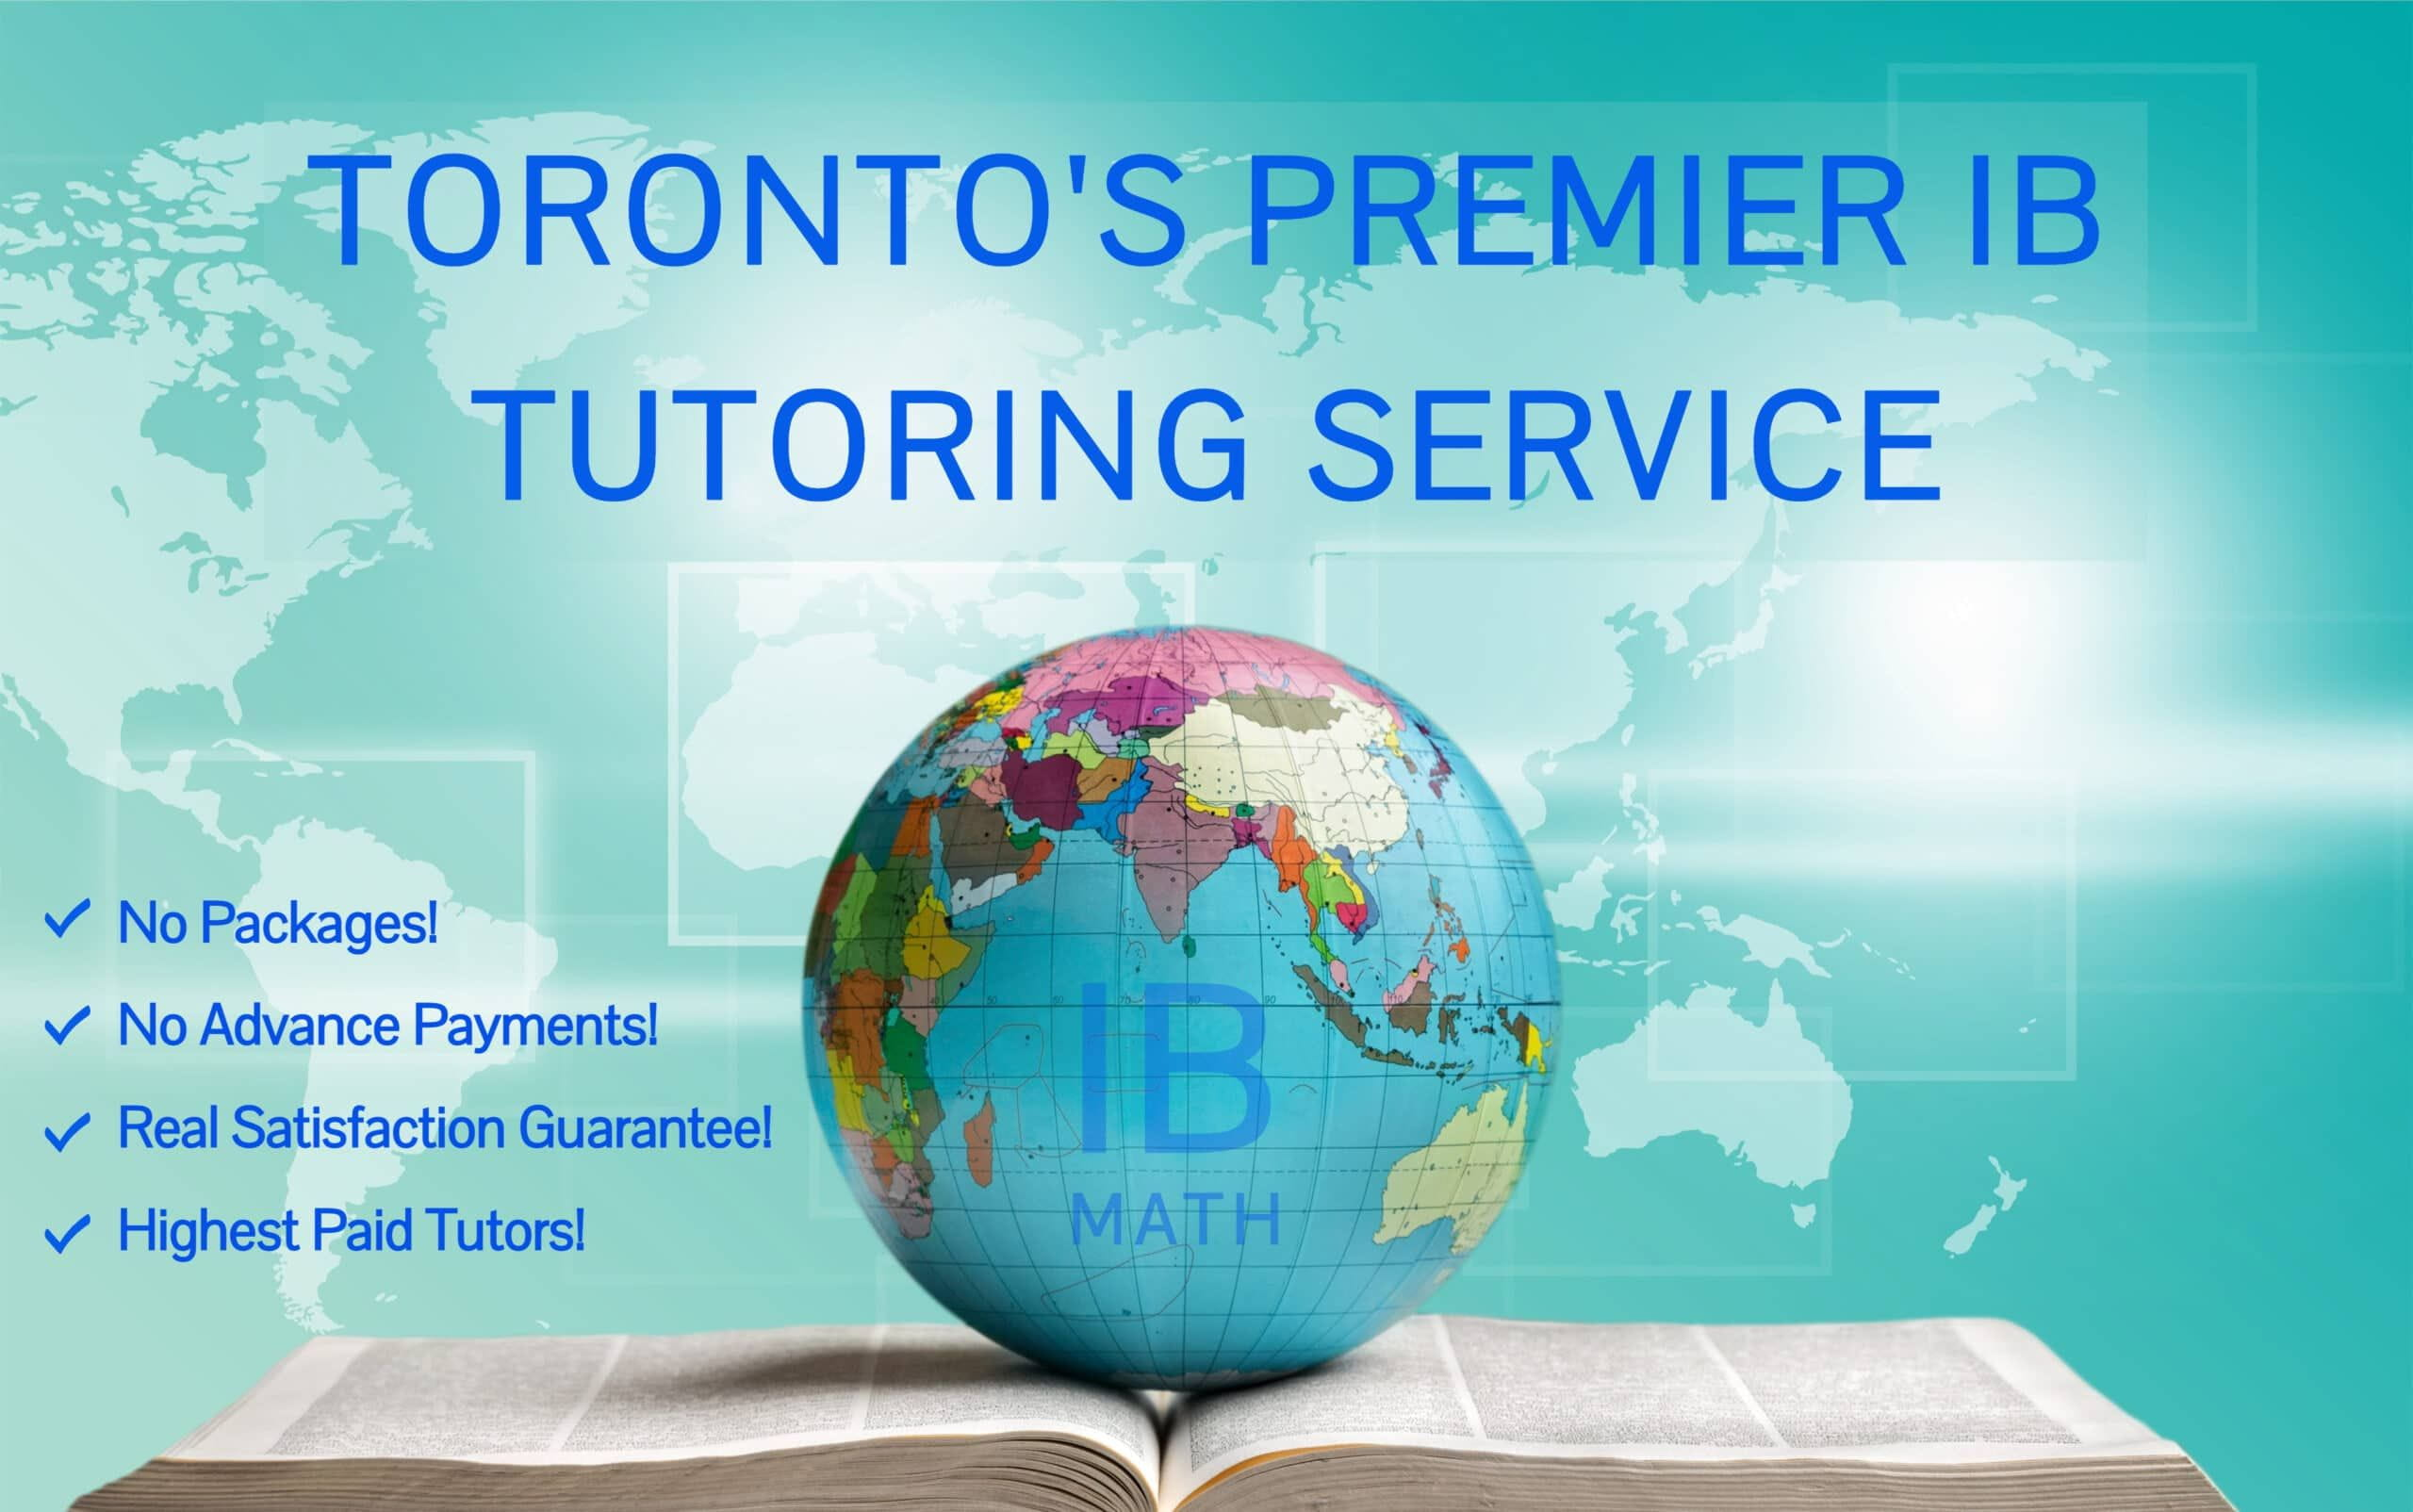 IB MATH TUTORING WITH HACK YOUR COURSE AP AND IB TUTORING SERVICE IN TORONTO